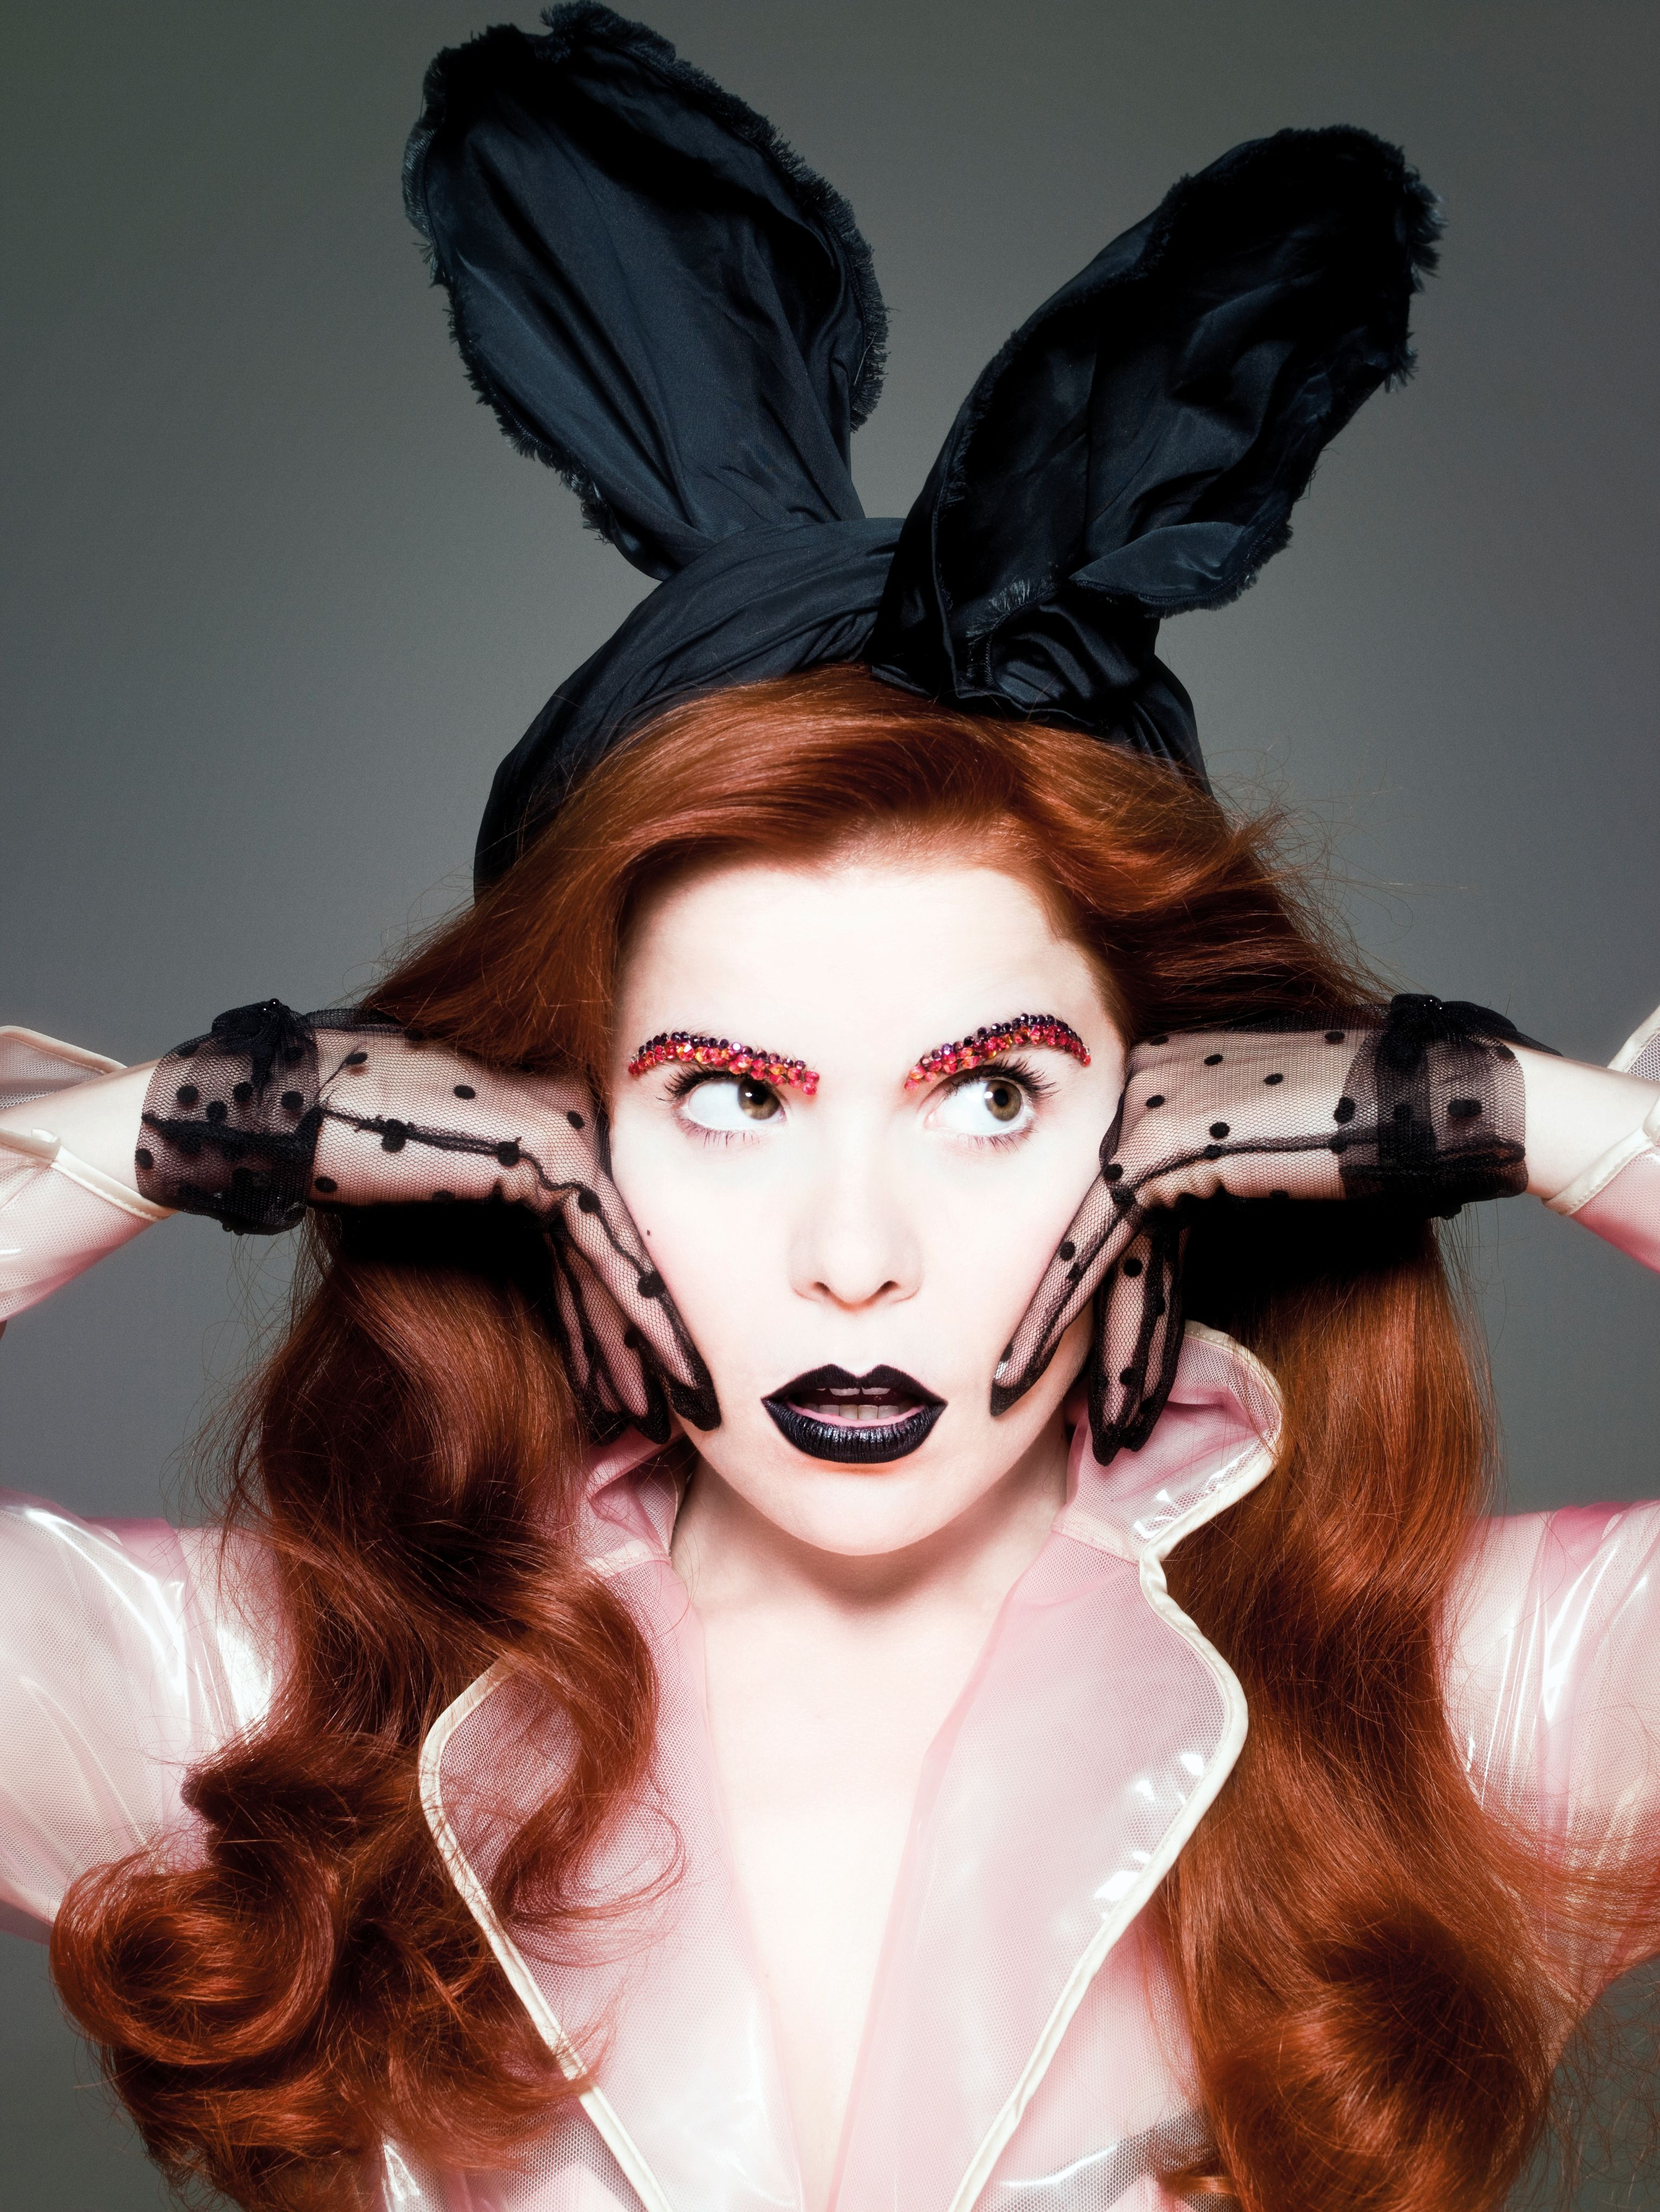 Paloma Faith - a girl who knows a thing or two about headwear.